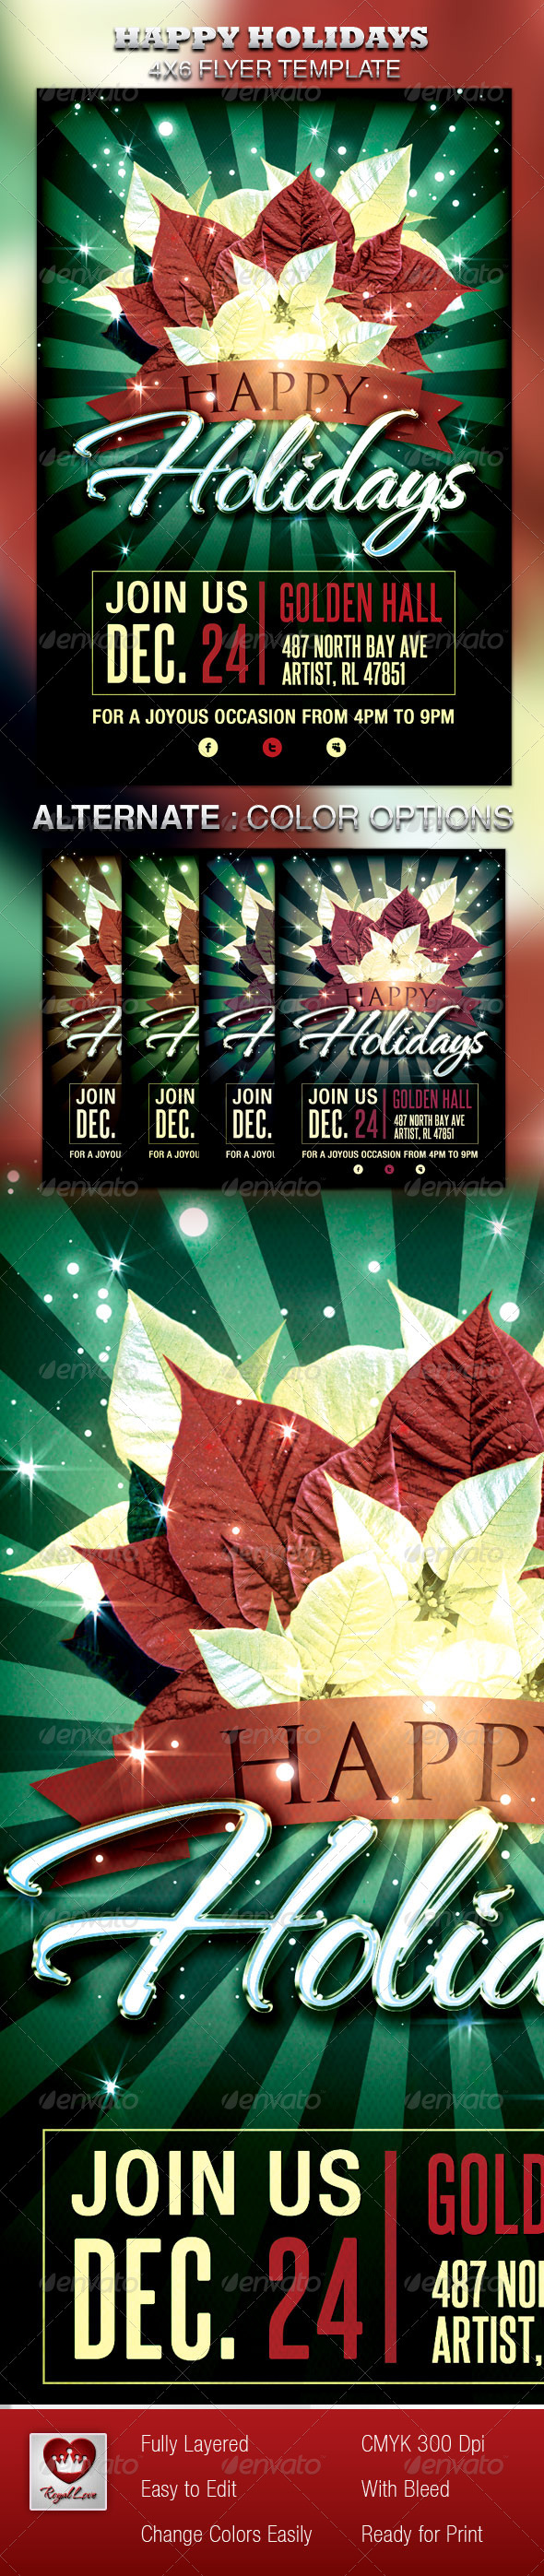 Happy Holidays Flyer - Holidays Events